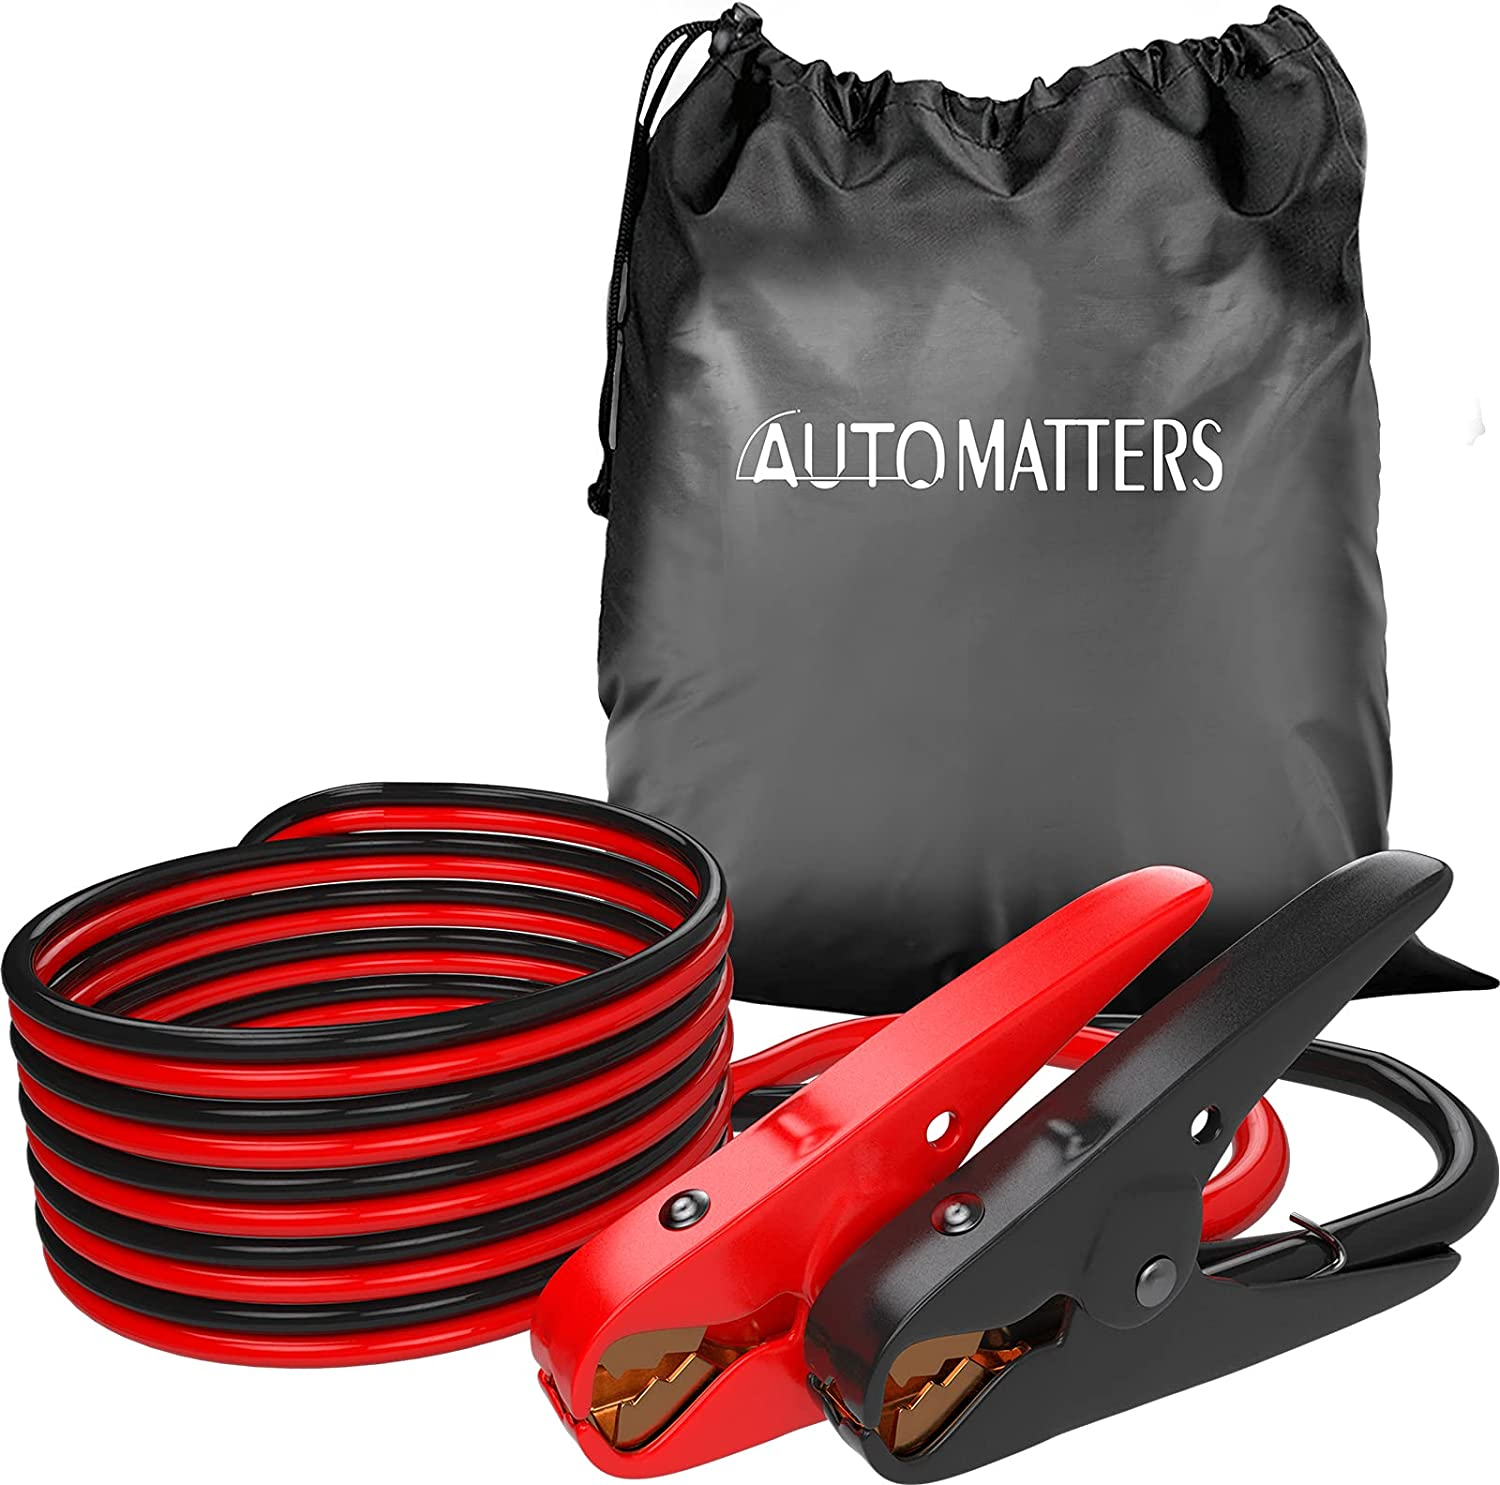 Jumper Cables 2 Gauge Our shop OFFers the best service 16 Feet Duty Ca Manufacturer OFFicial shop Booster Automatters Heavy